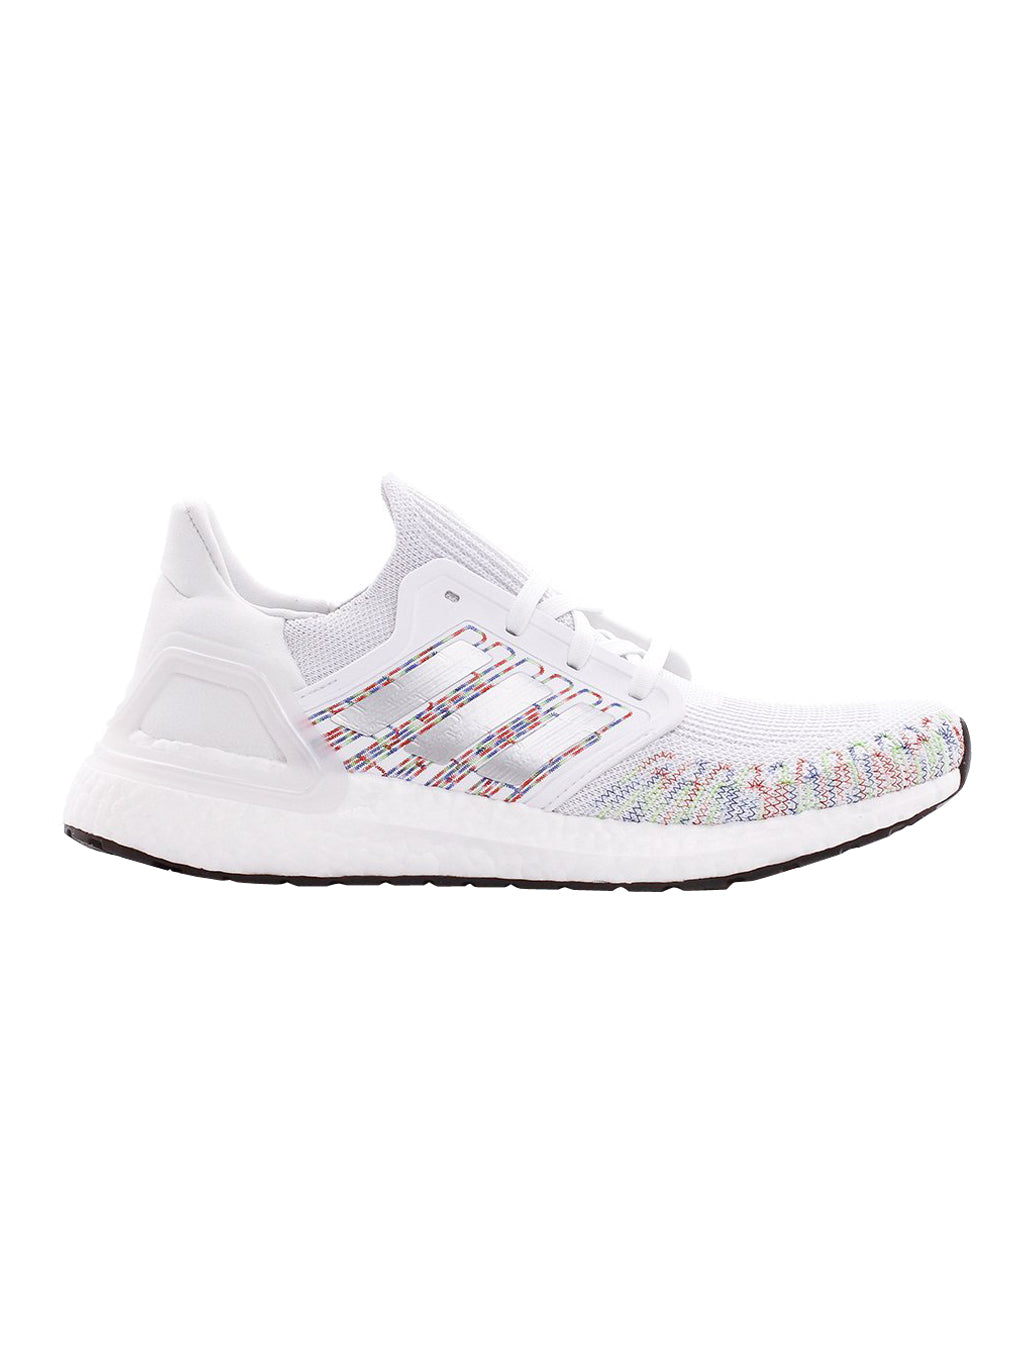 White and Multi Ultraboost 20 Sneakers